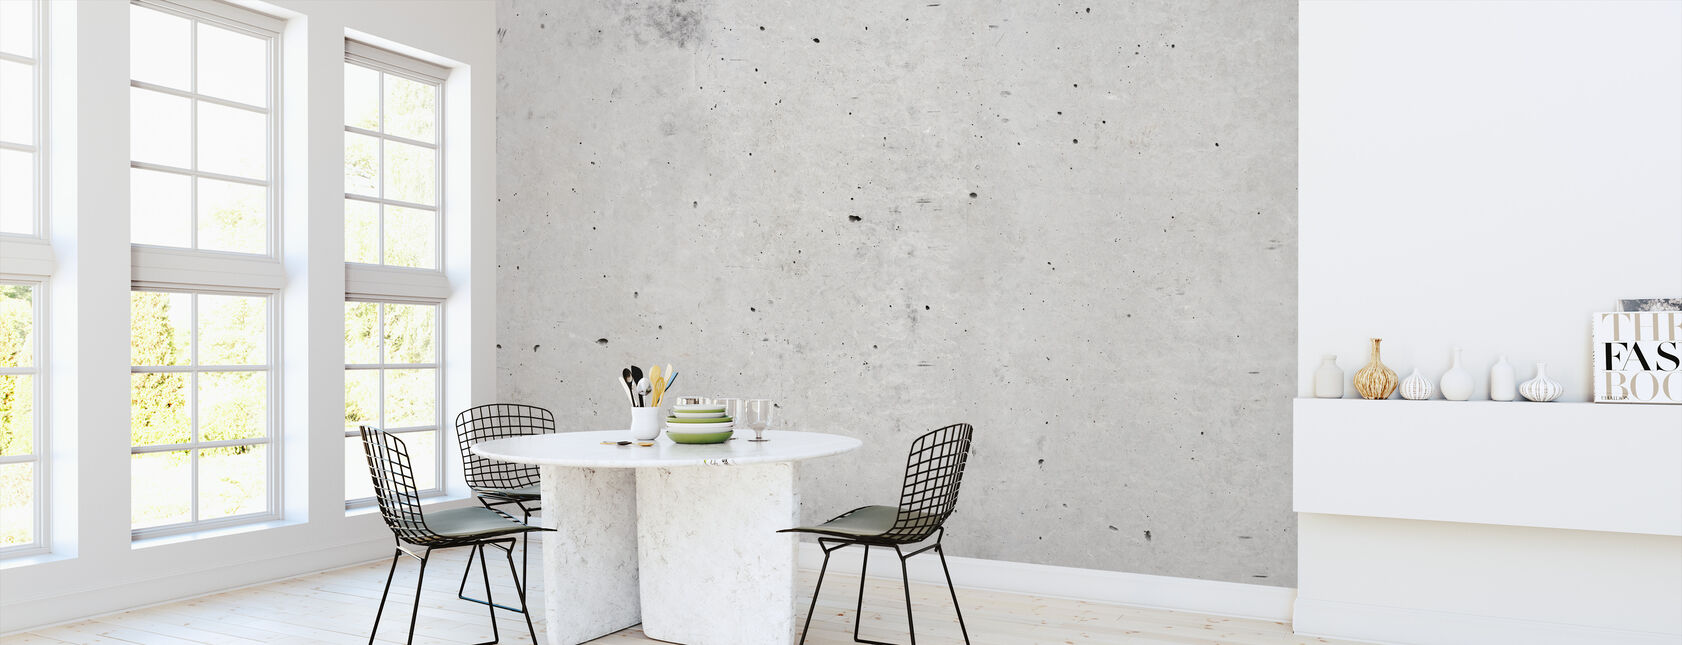 Hard Concrete Wall - Wallpaper - Kitchen